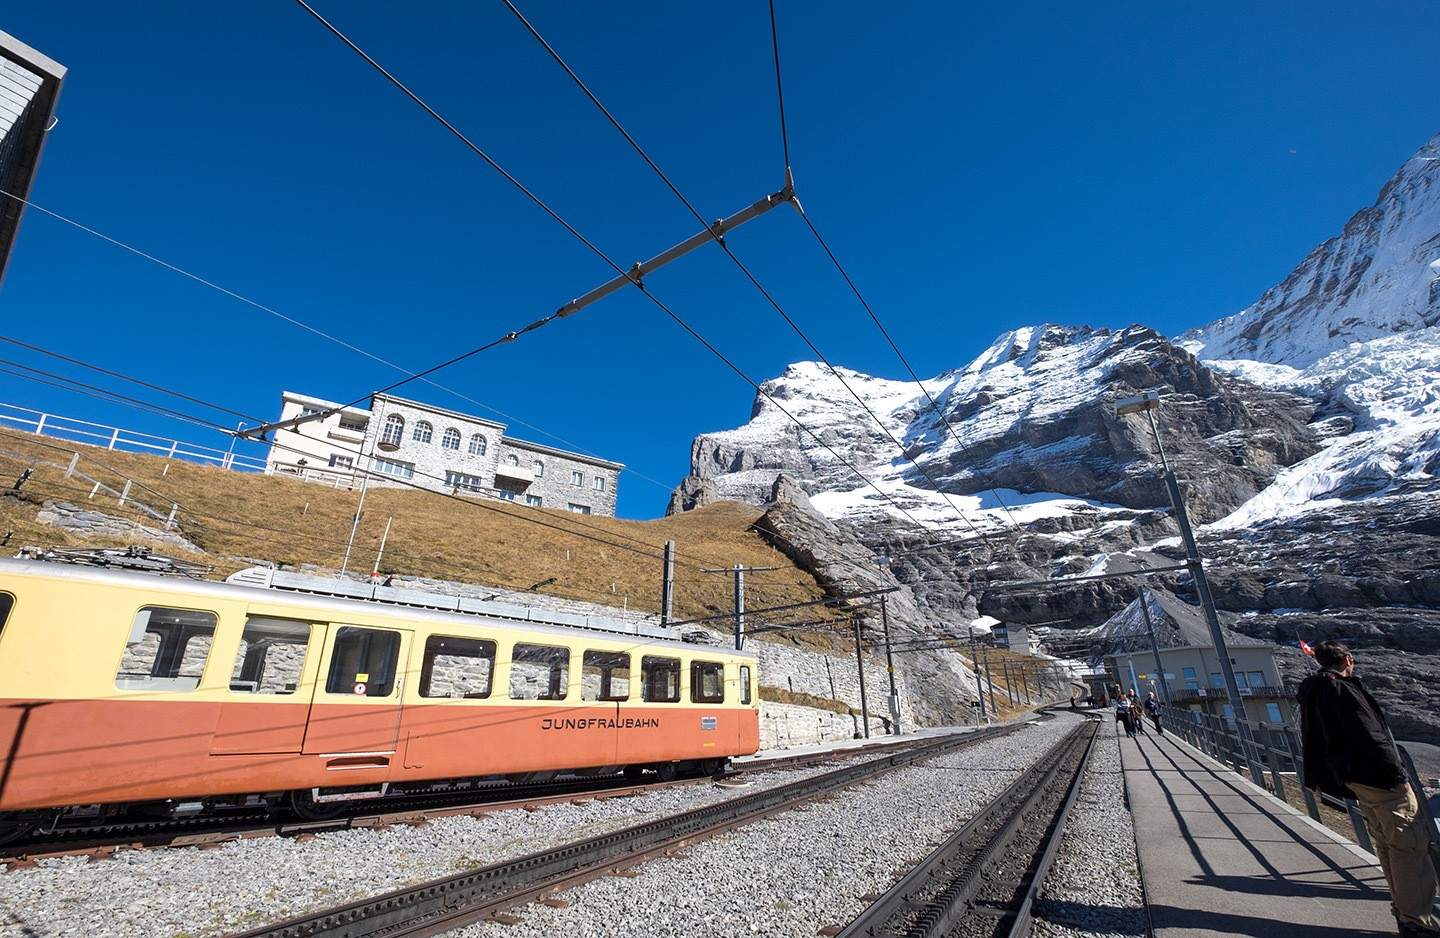 The Jungfraubahn scenic train in Switzerland